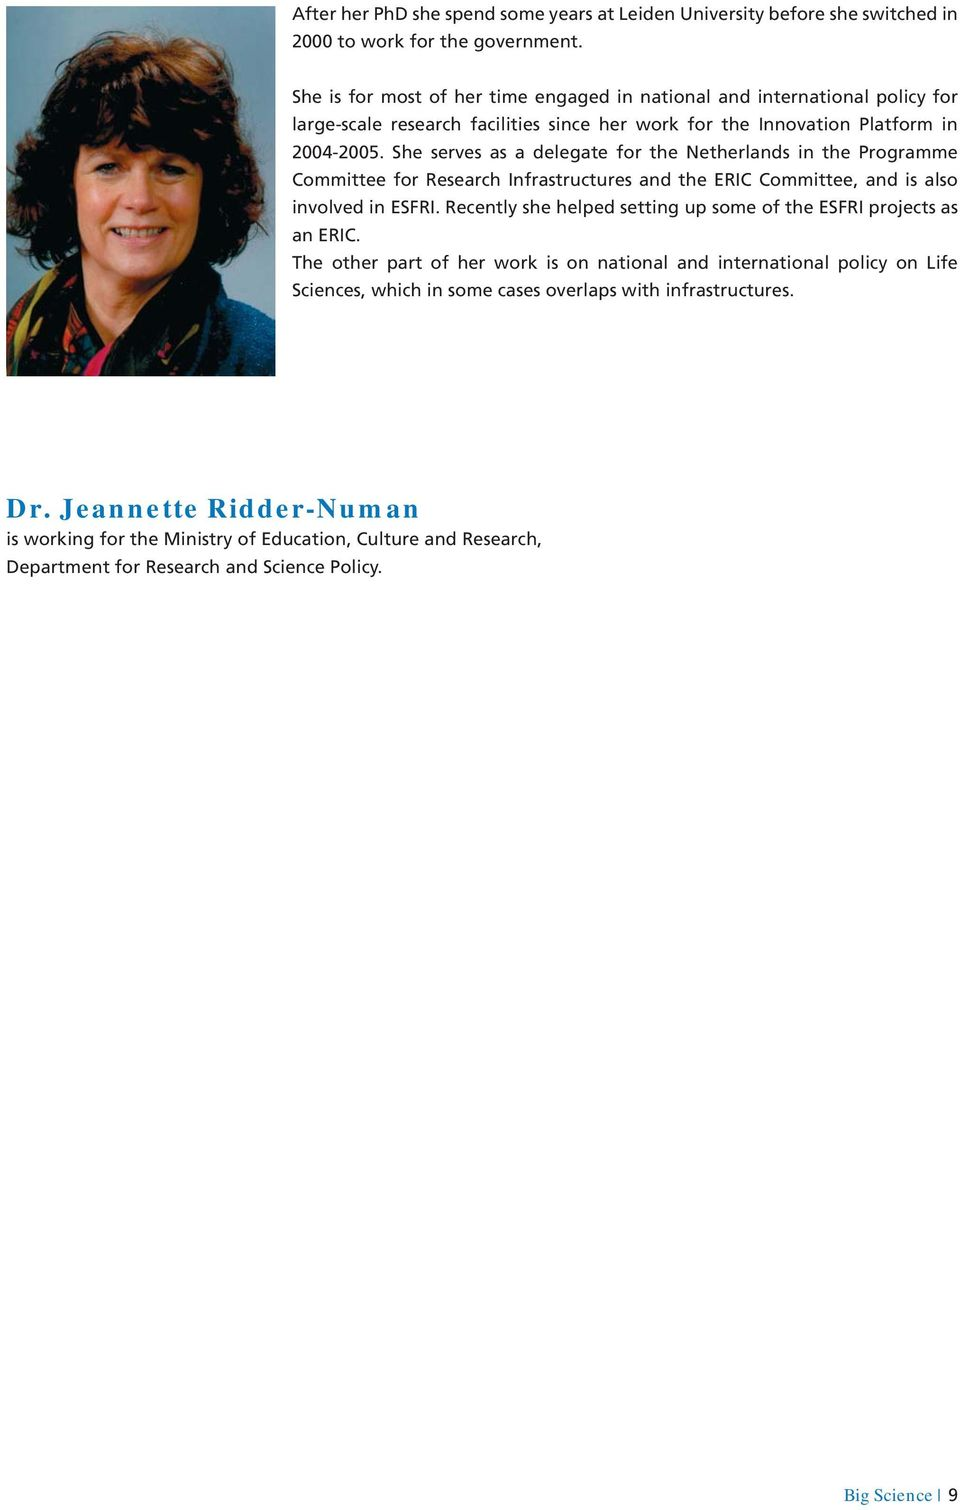 She serves as a delegate for the Netherlands in the Programme Committee for Research Infrastructures and the ERIC Committee, and is also involved in ESFRI.